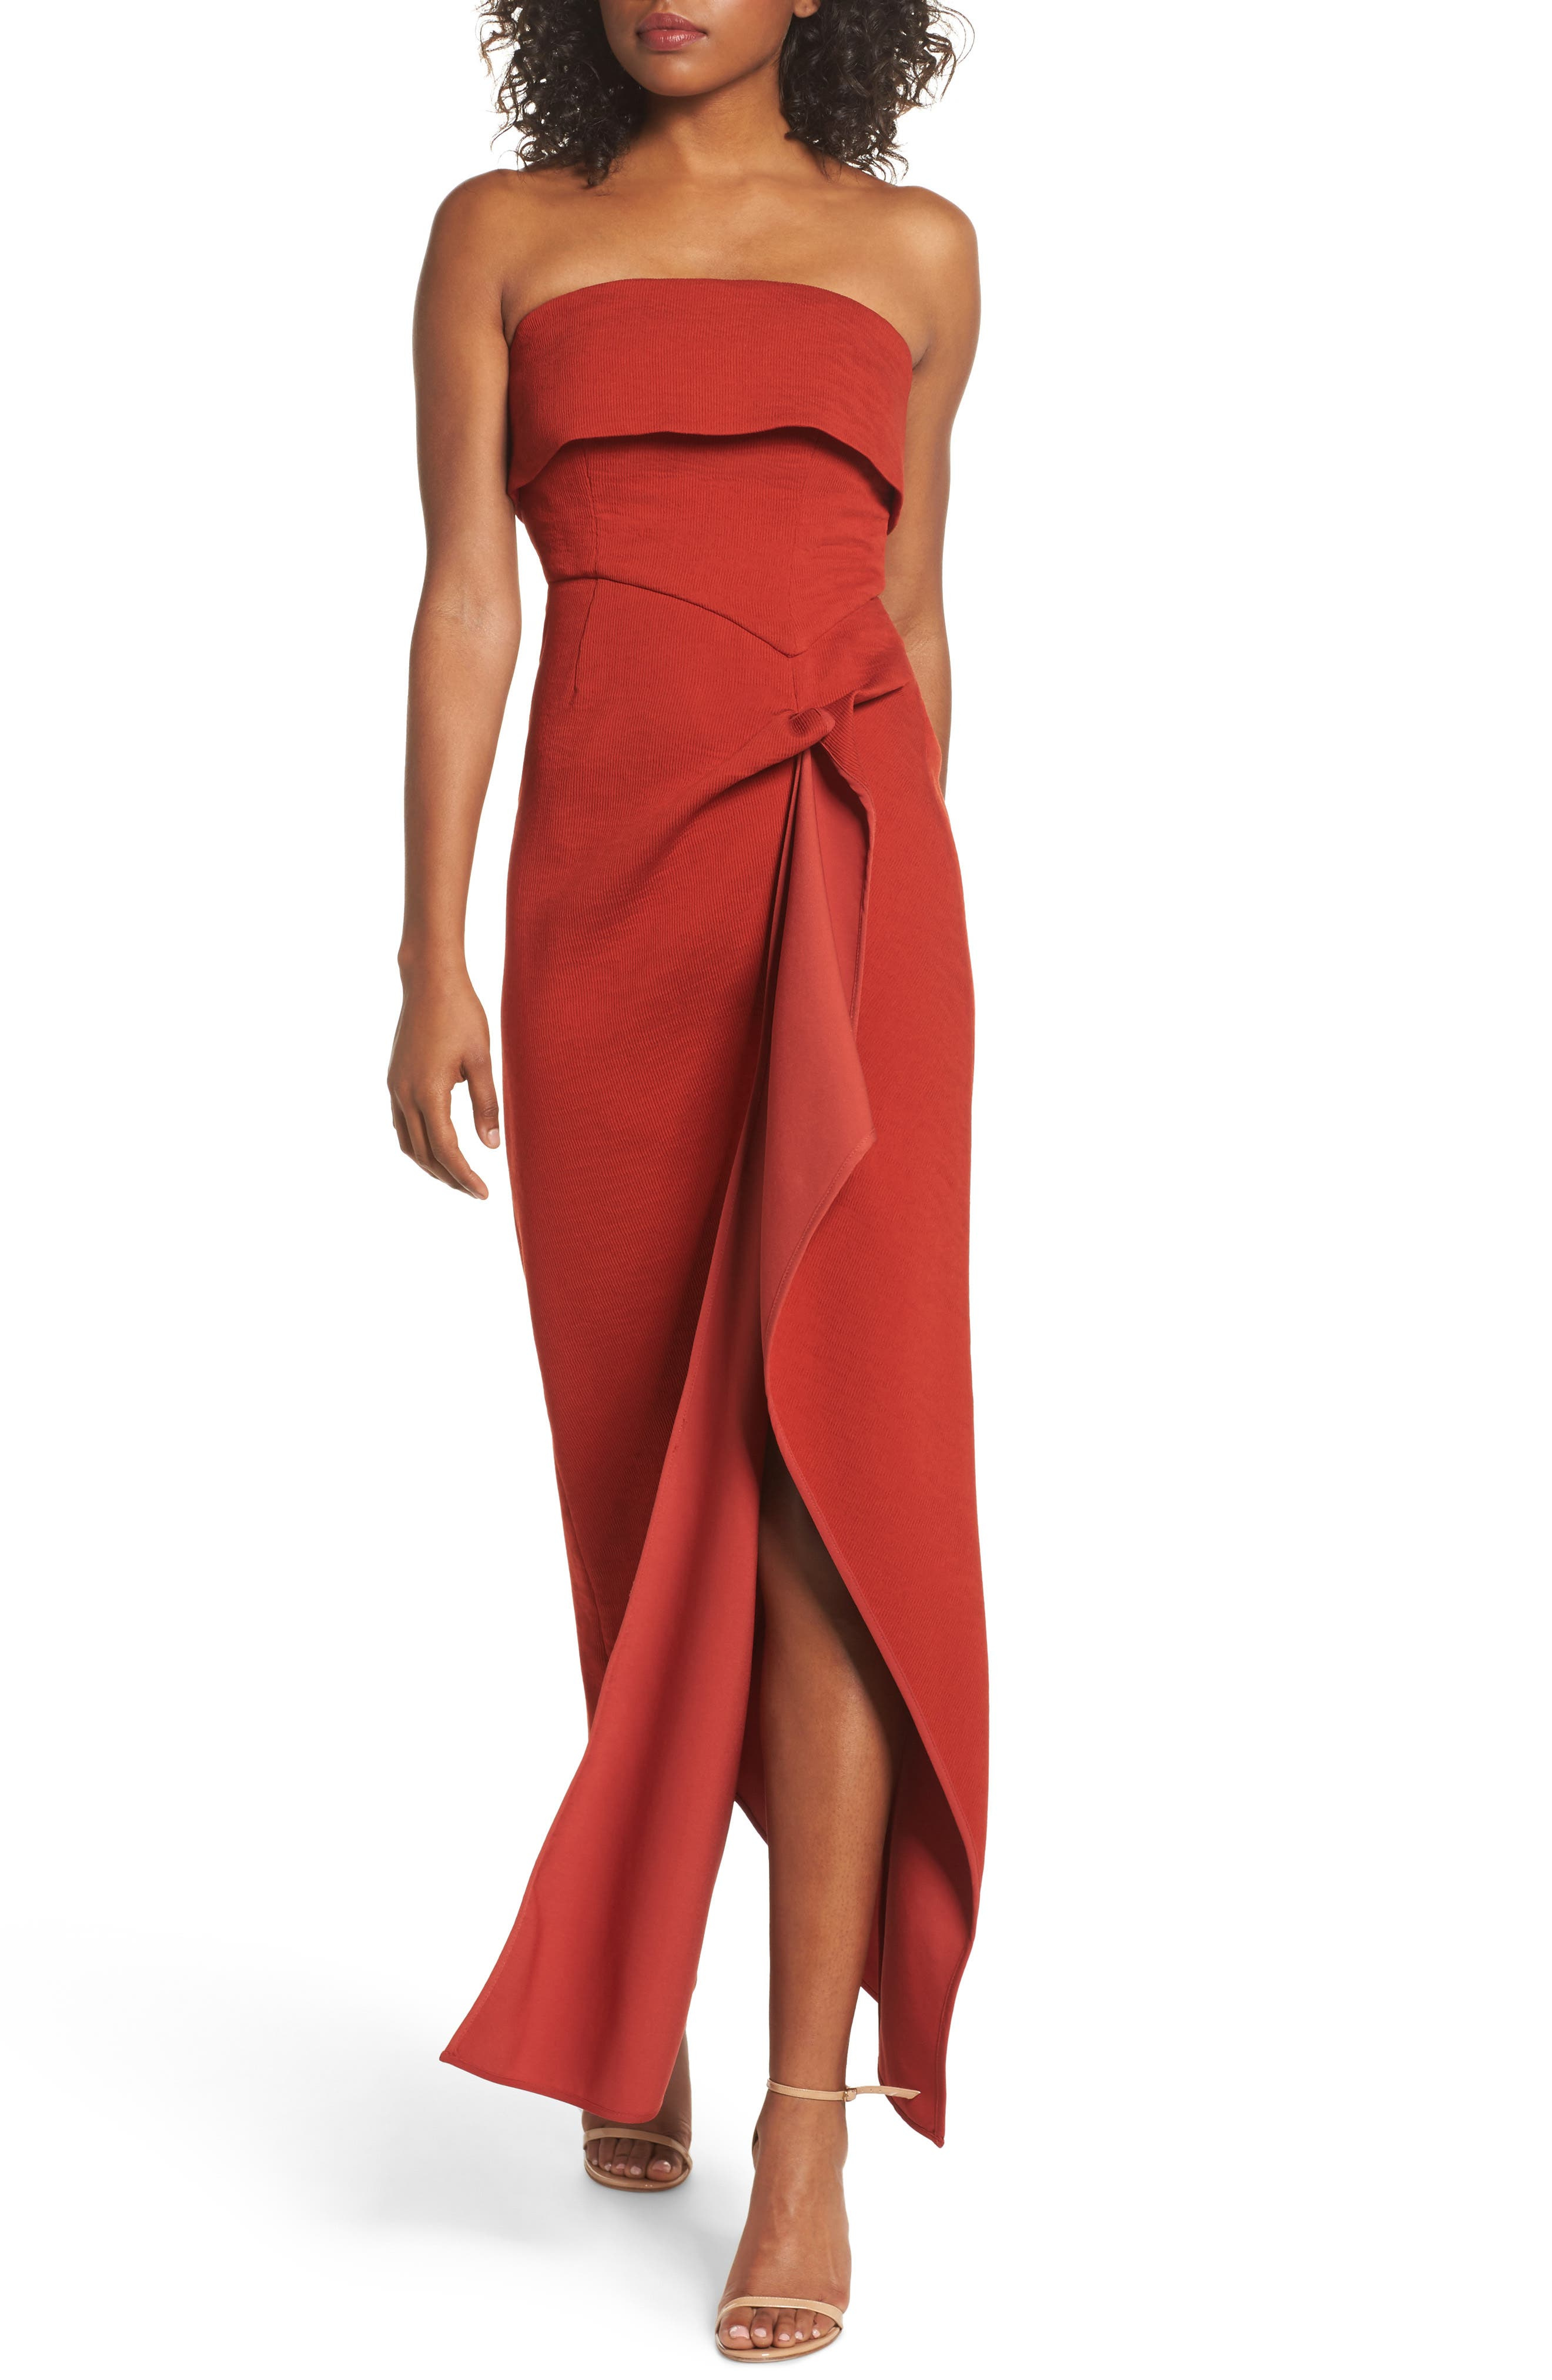 Fluidity Strapless Maxi Dress,                             Main thumbnail 1, color,                             Red